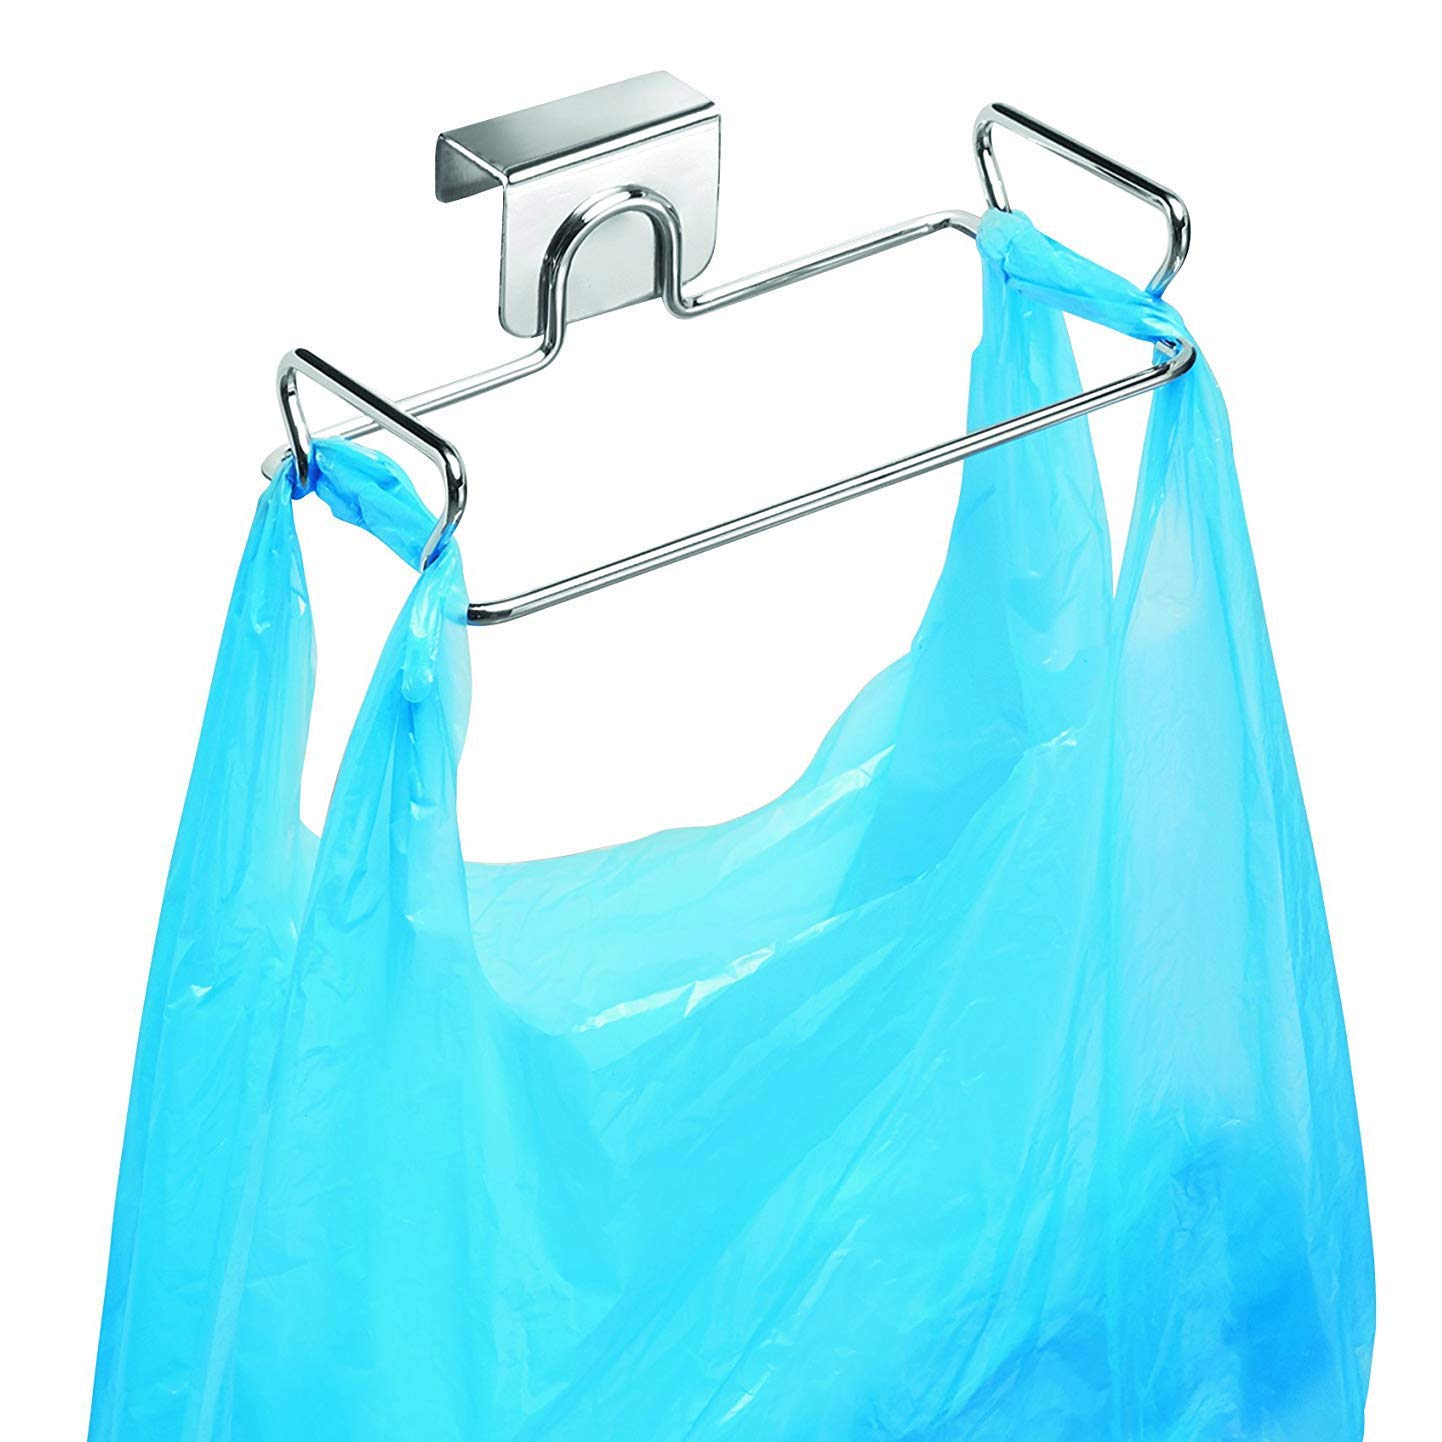 KABAKE Hanging Garbage Bags Storage Organizer Rack Stainless Steel Trash Bag Holder Towel Gloves Hanger for Kitchen Cabinet Cupboard Drawer Back Door Hook Hangers